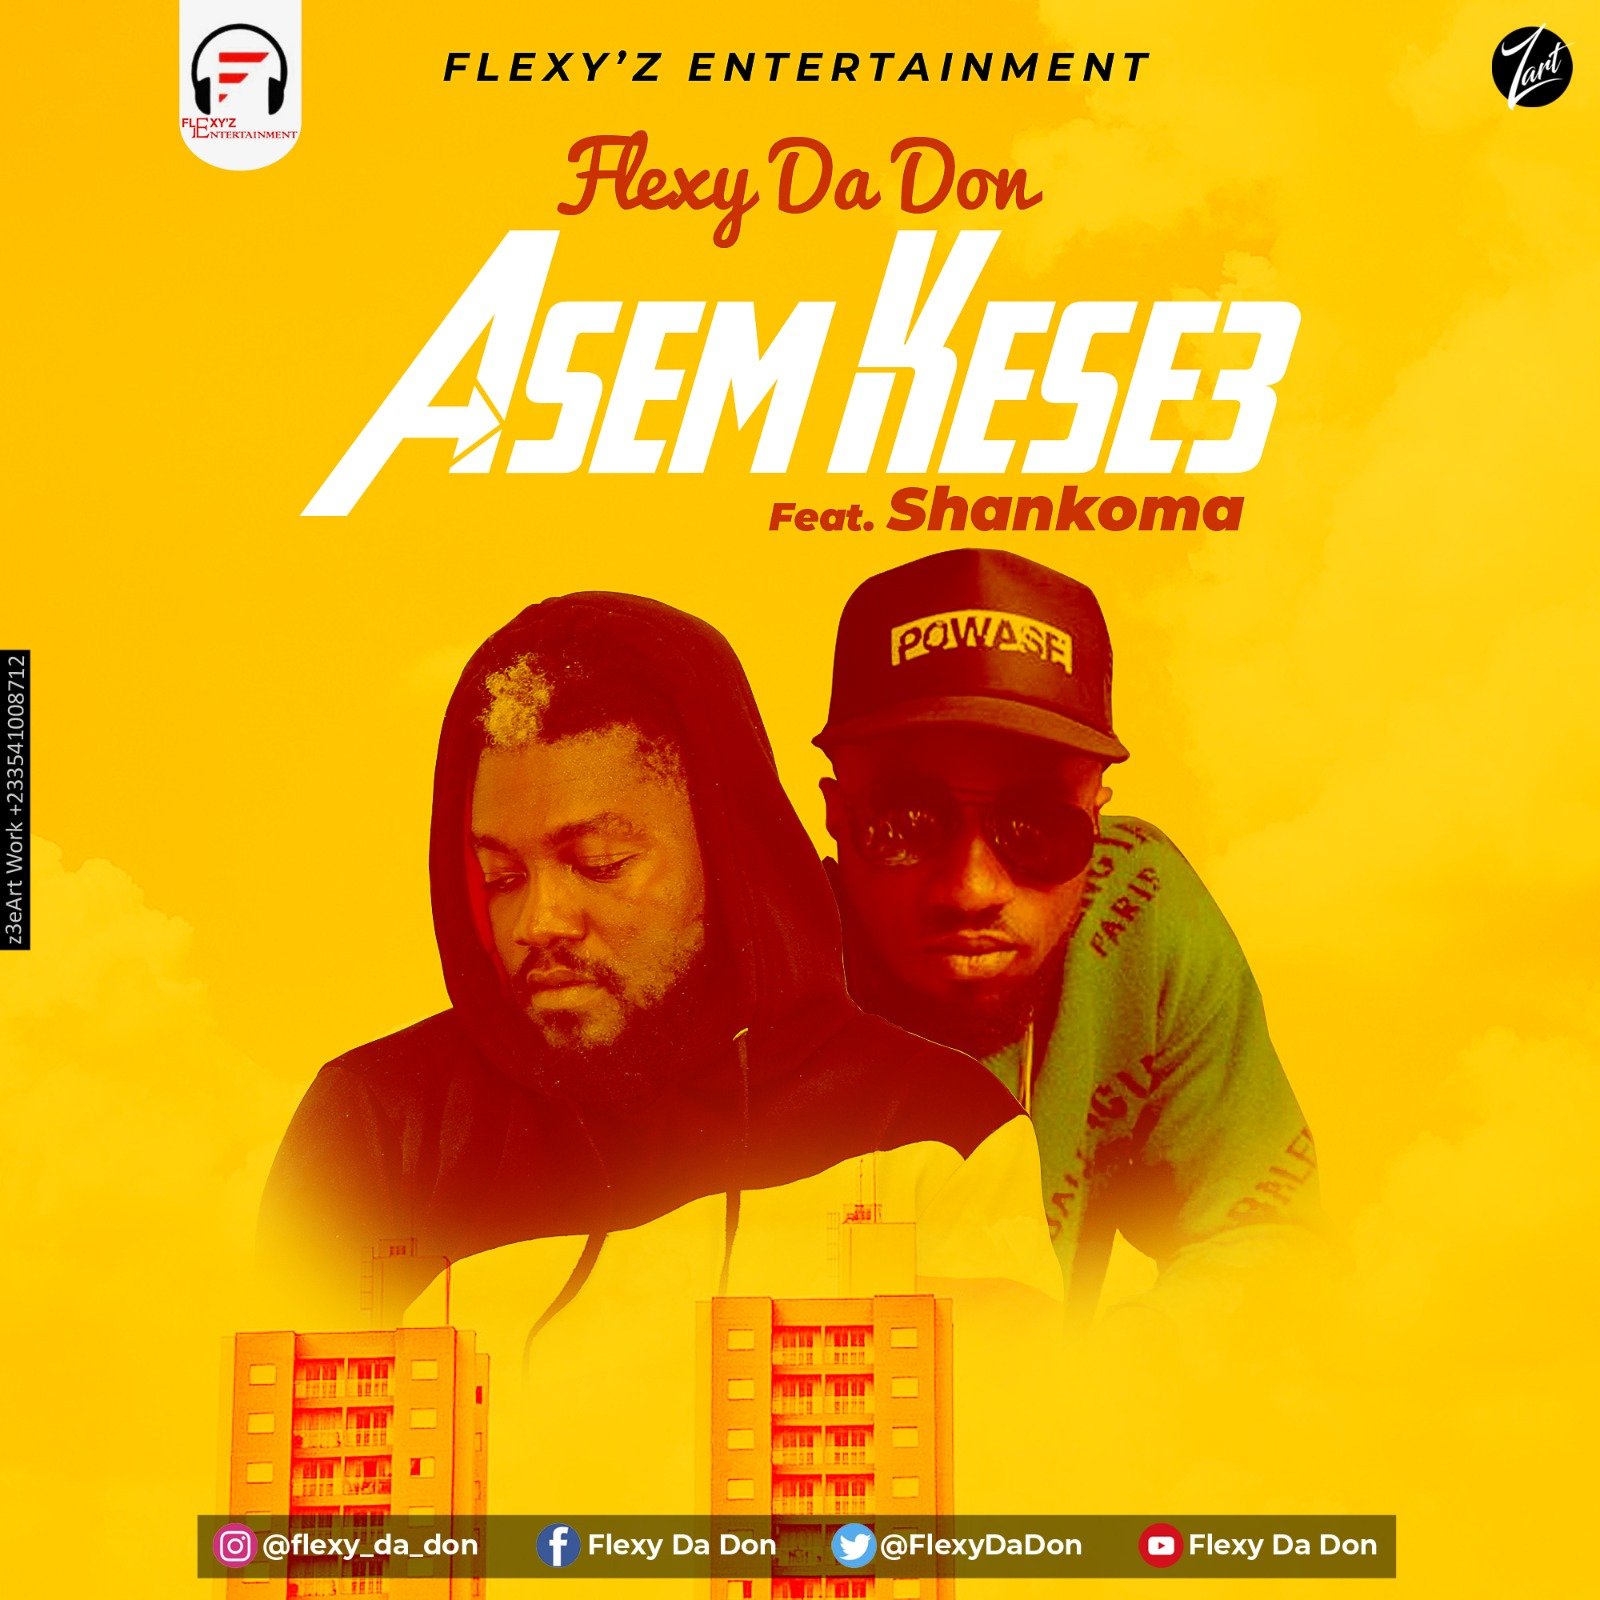 Flexy Da Don – Asem Kese3 feat. Shankoma